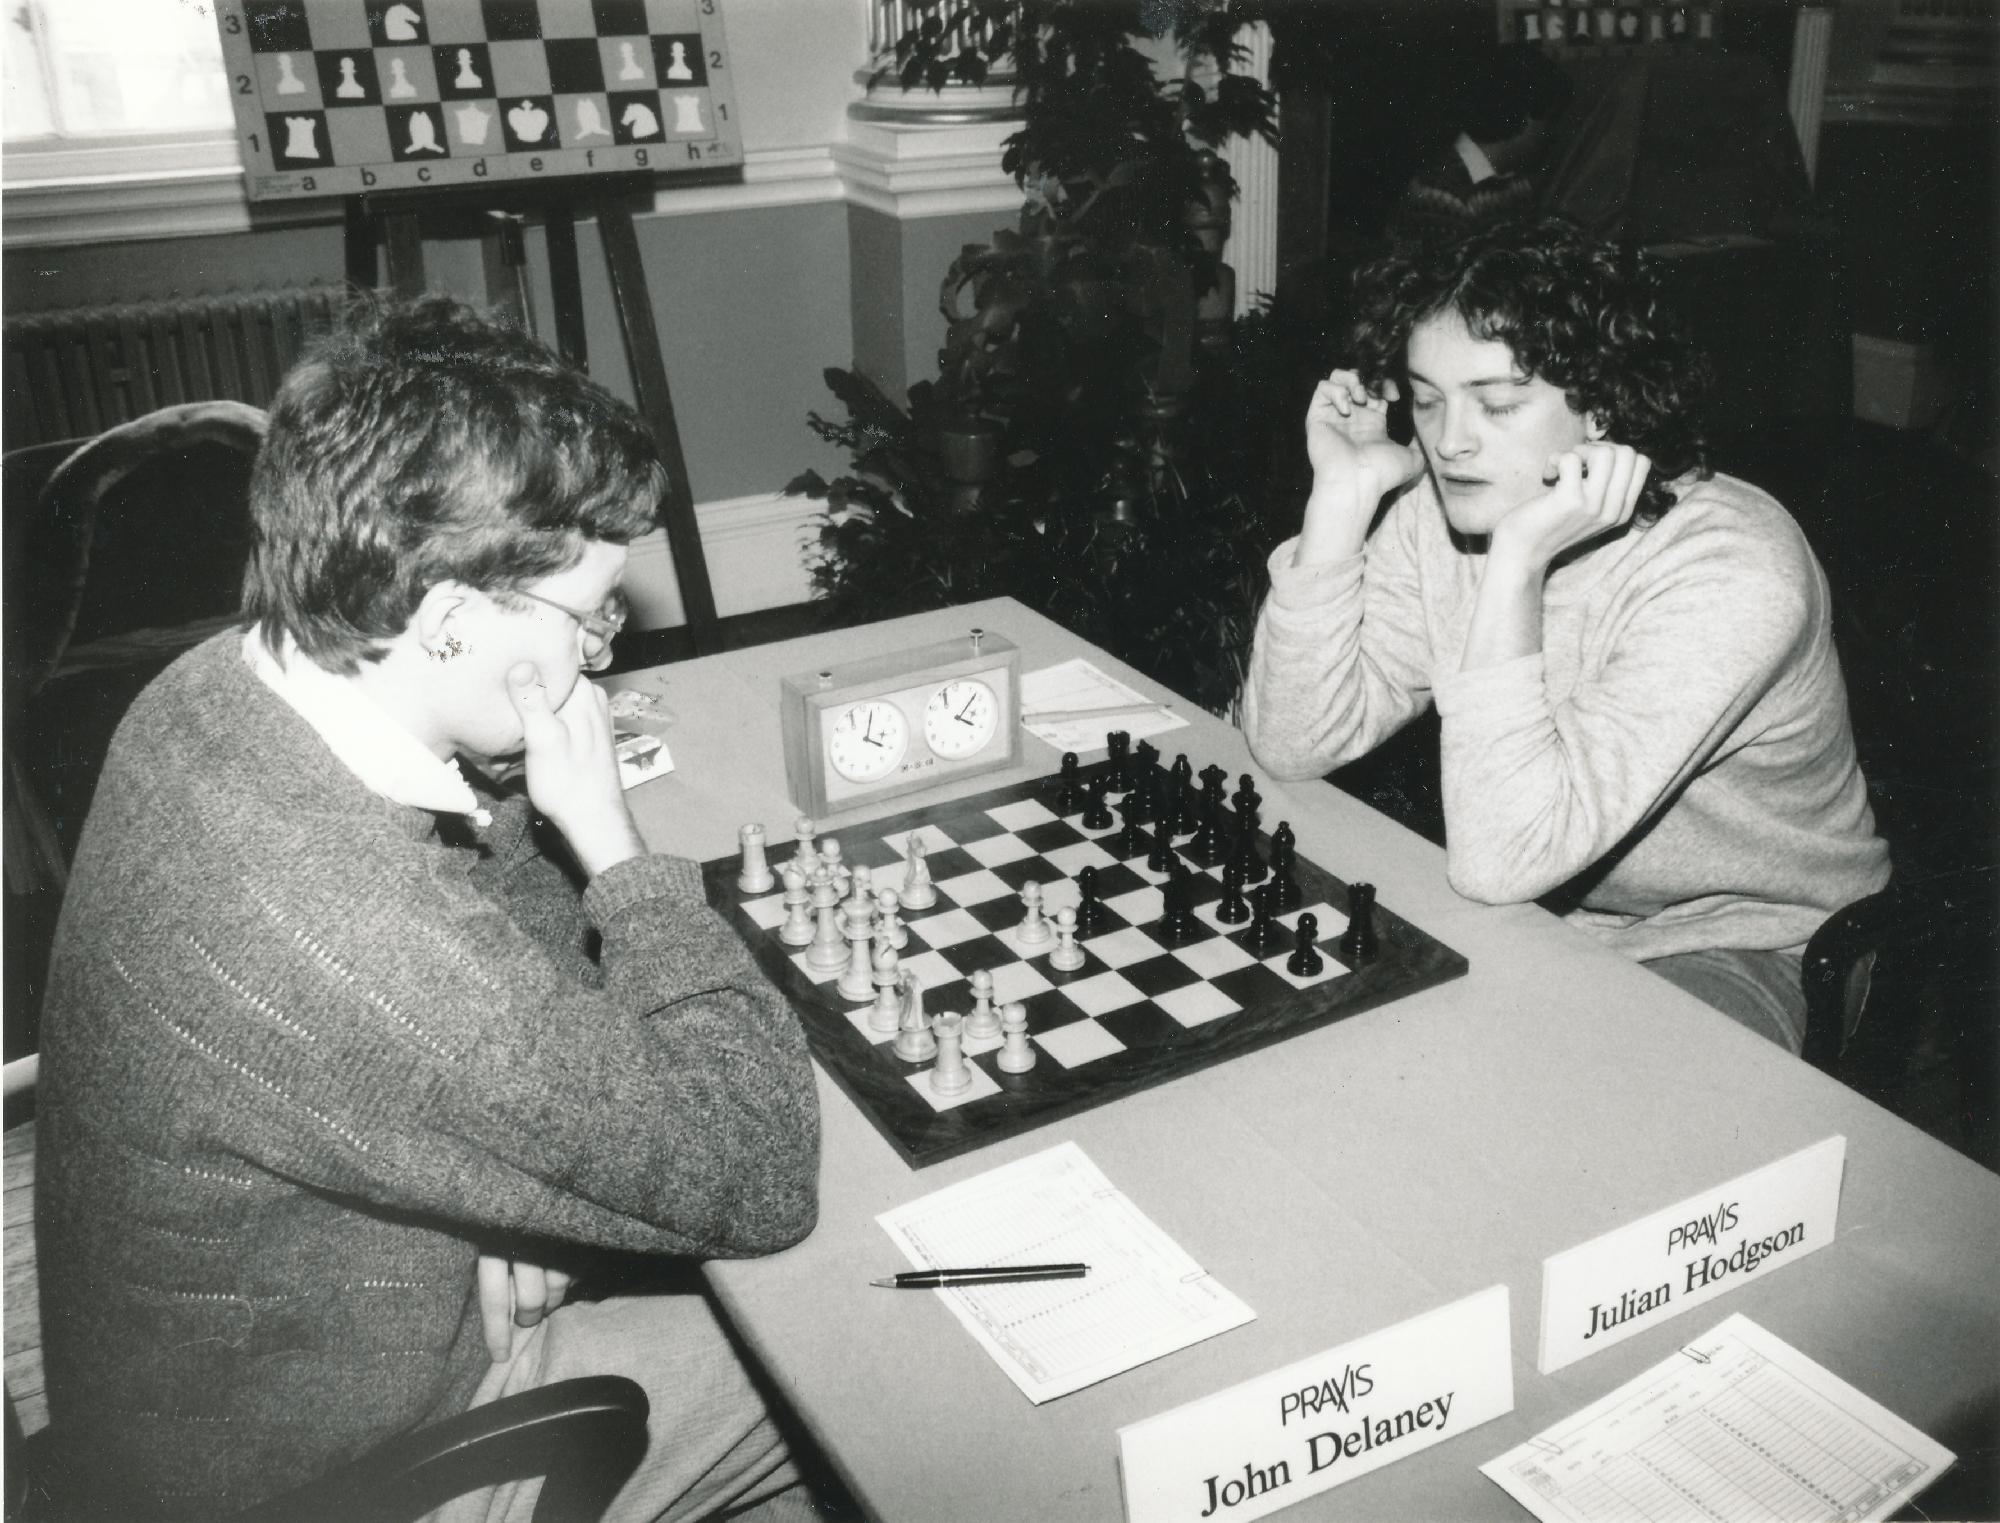 John Delaney plays Julian Hodgson at the Bath Zonal Tournament in 1987